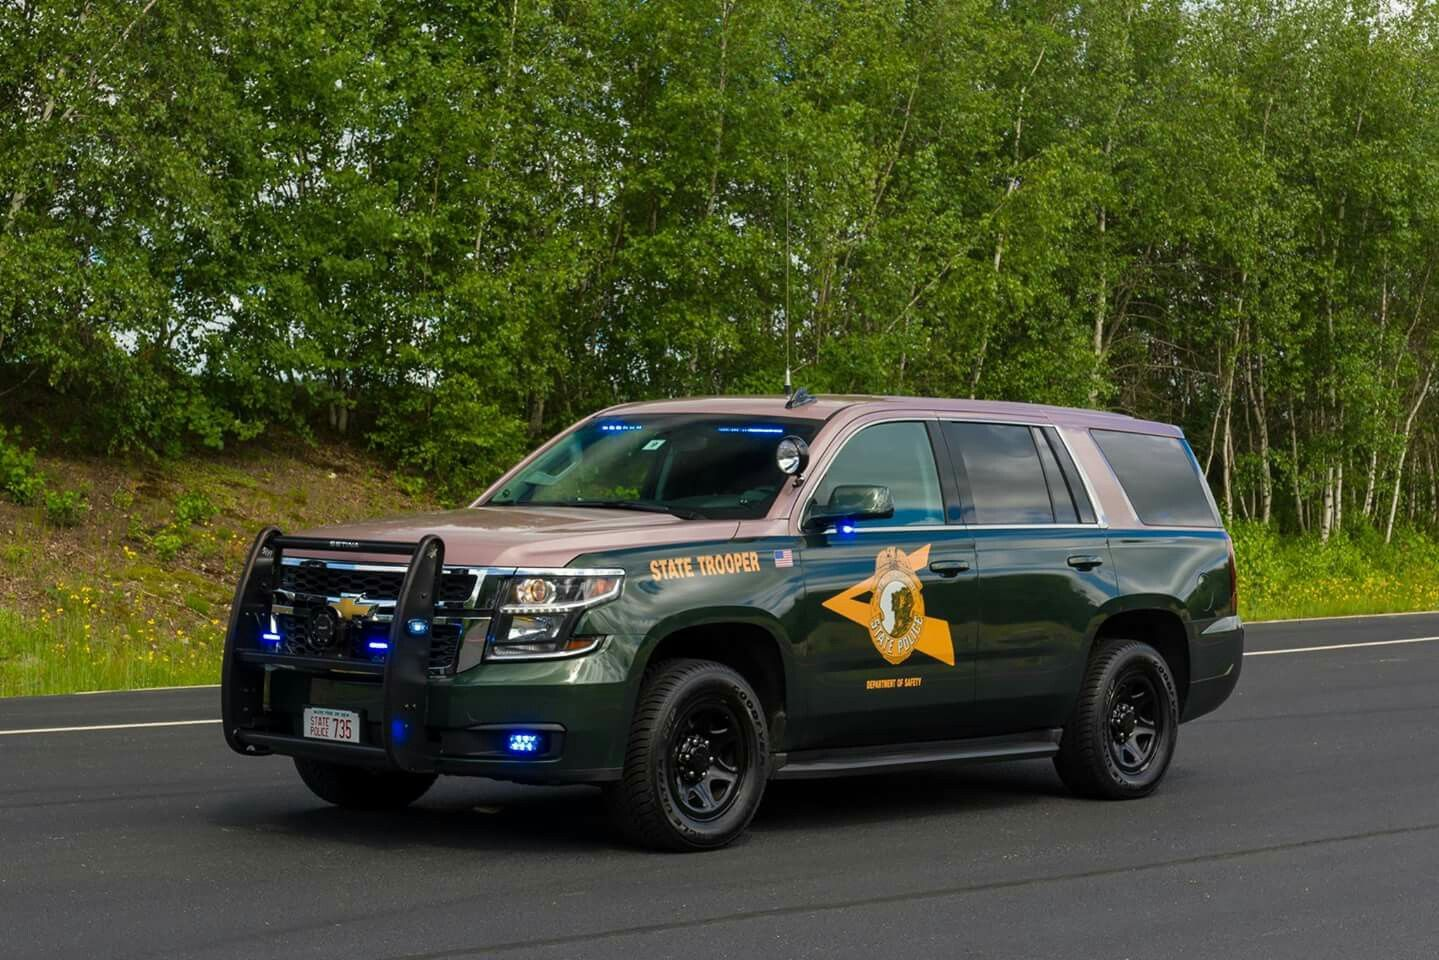 New Hampshire State Police Dept. of Safety 735 2016